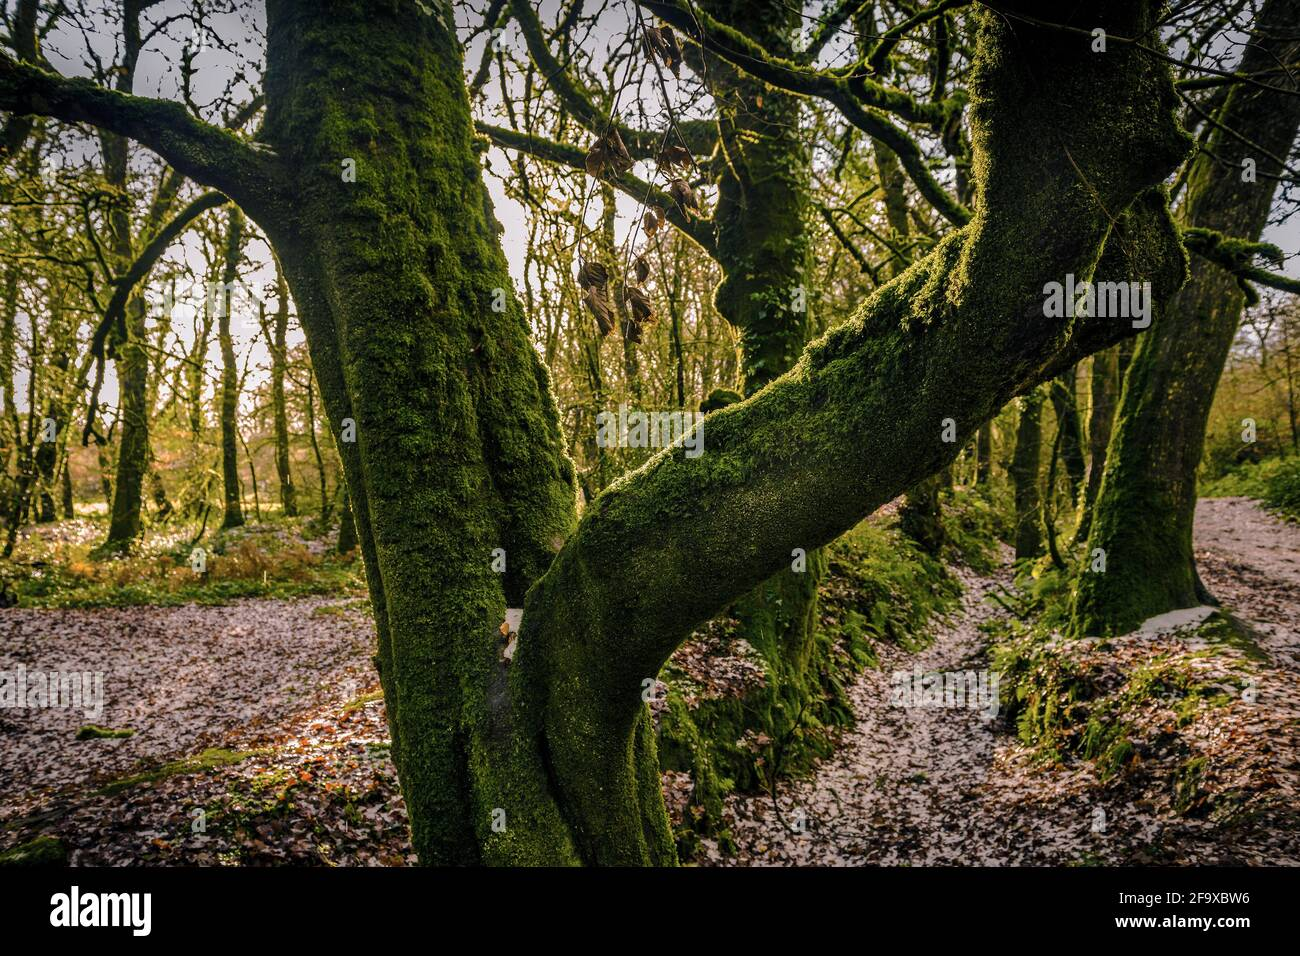 Moss growing on a Beech tree - Fagus sylvatica - in the ancient woodland Draynes Wood in Cornwall. Stock Photo